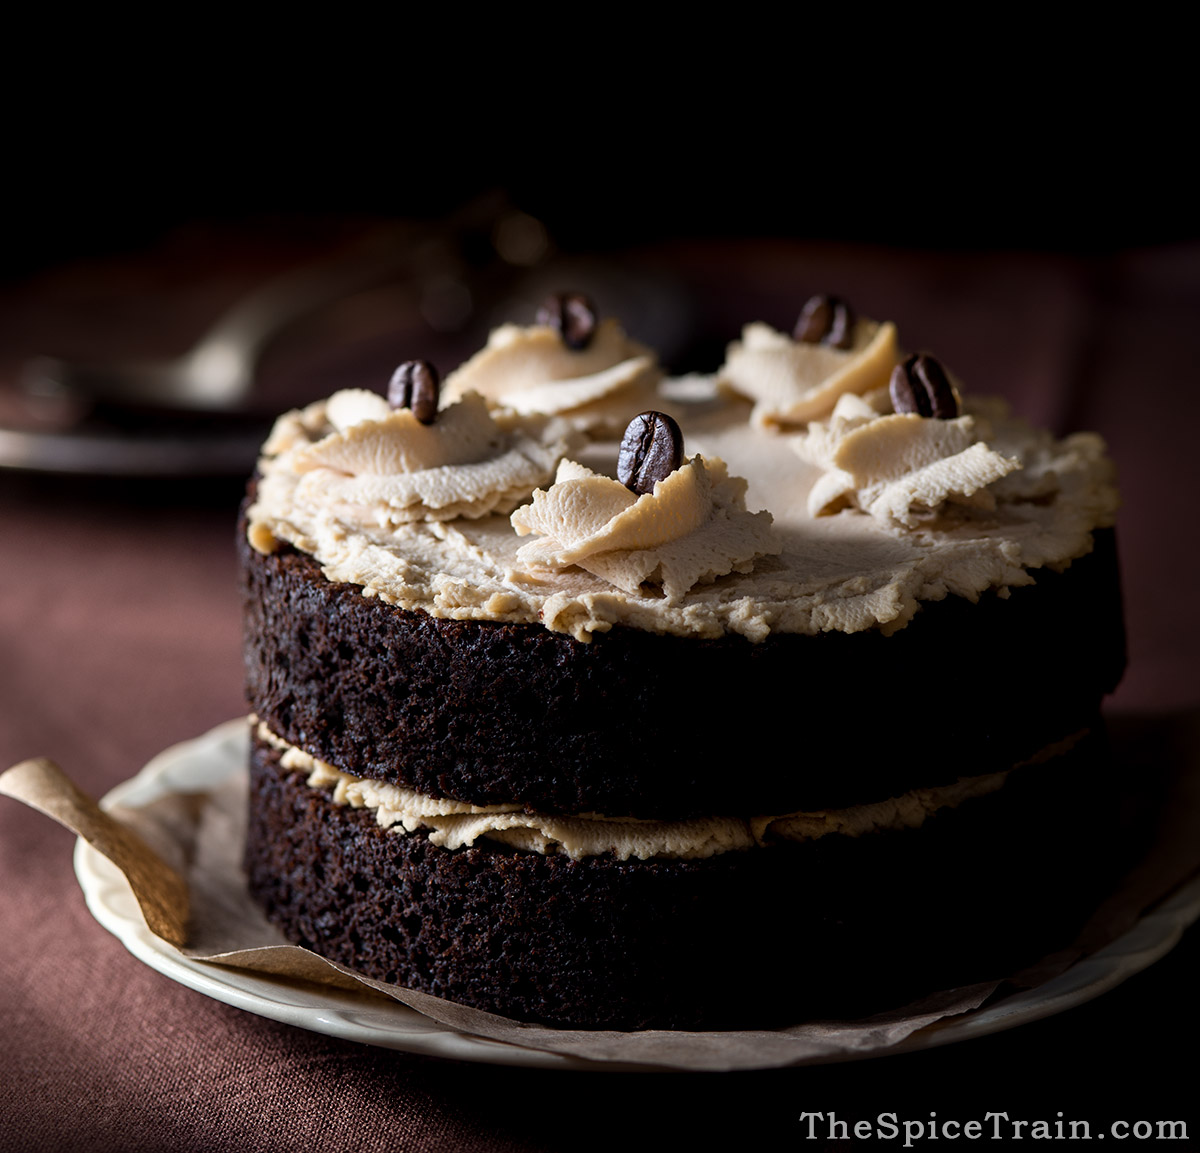 A chocolate layer cake frosted with mascarpone frosting and decorated with coffee beans.